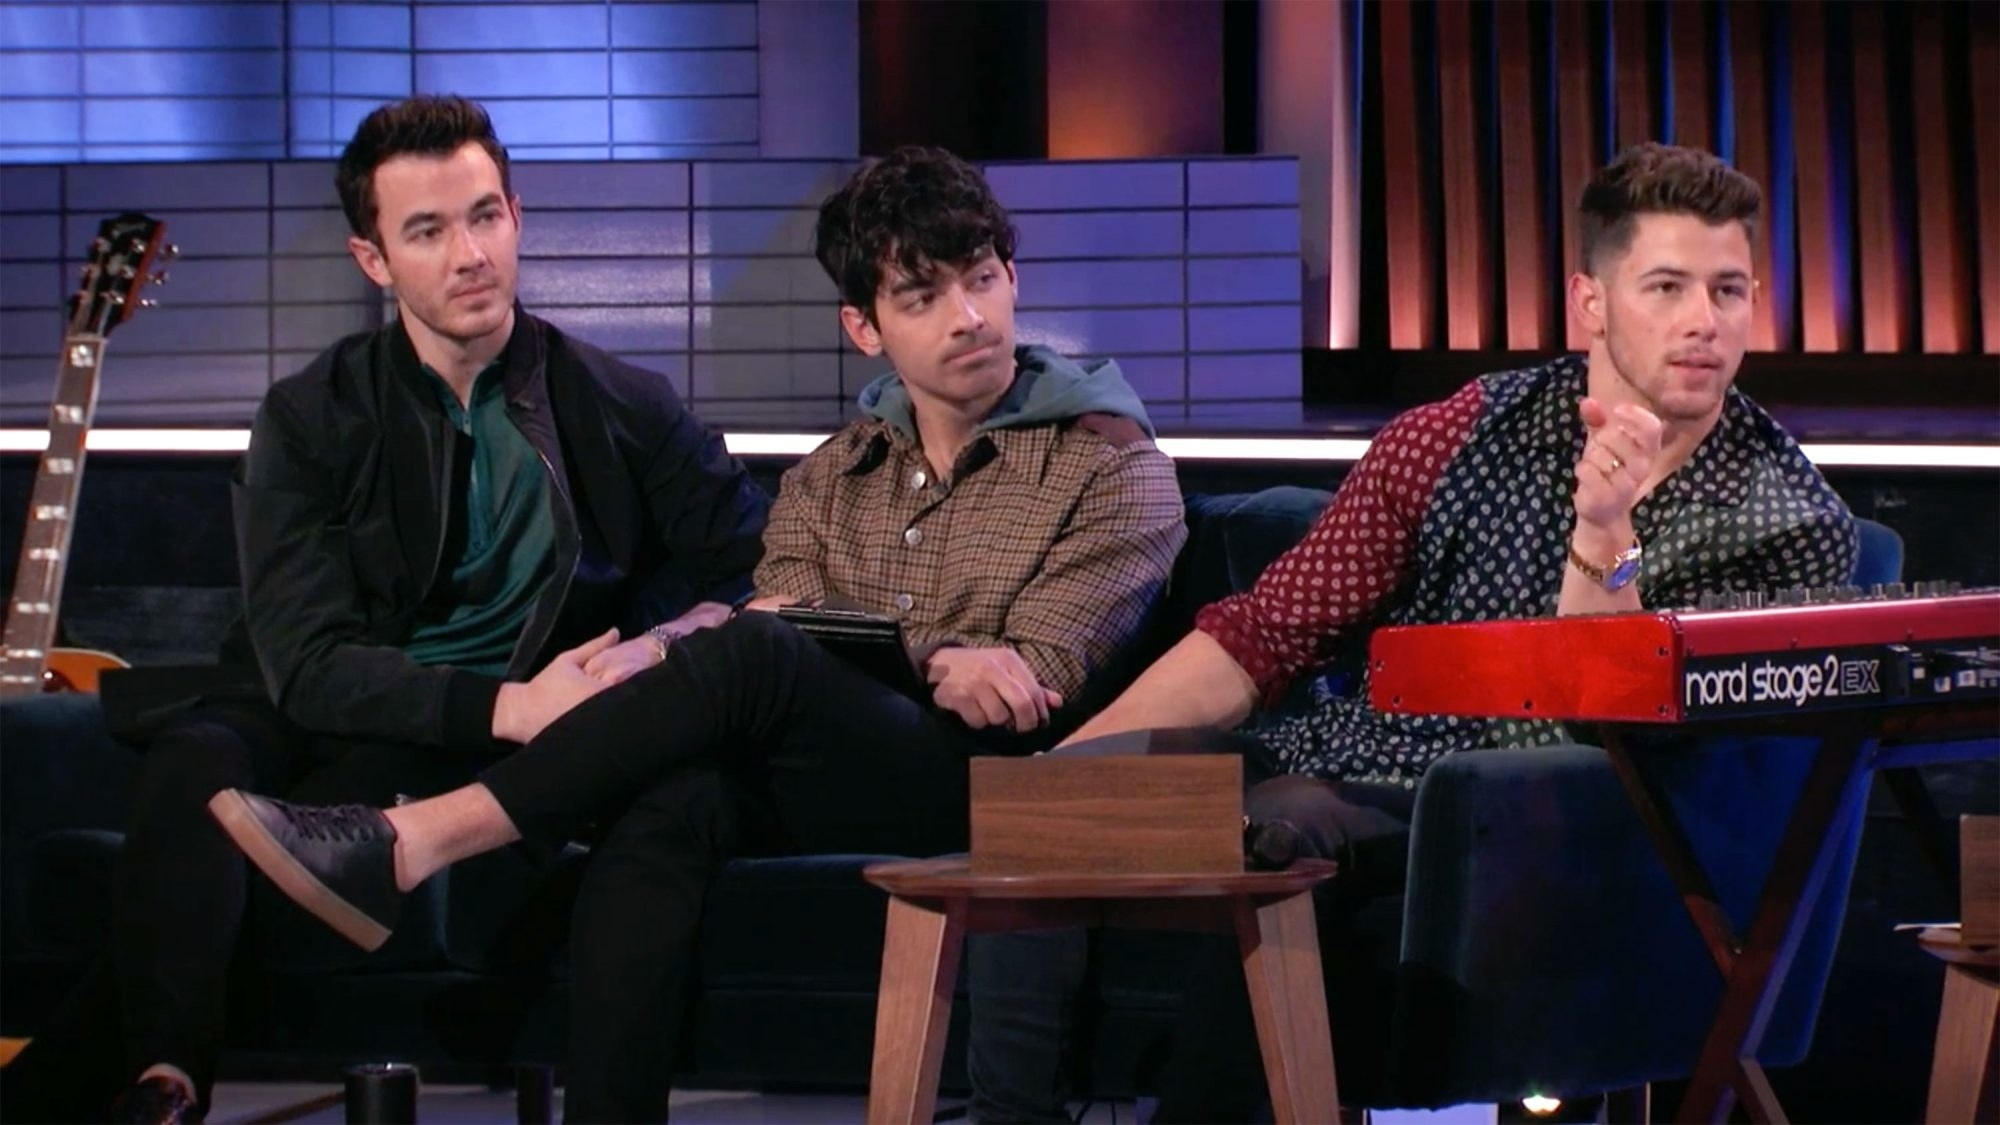 The Jonas Brothers sitting on a couch, looking like they're giving someone advice.